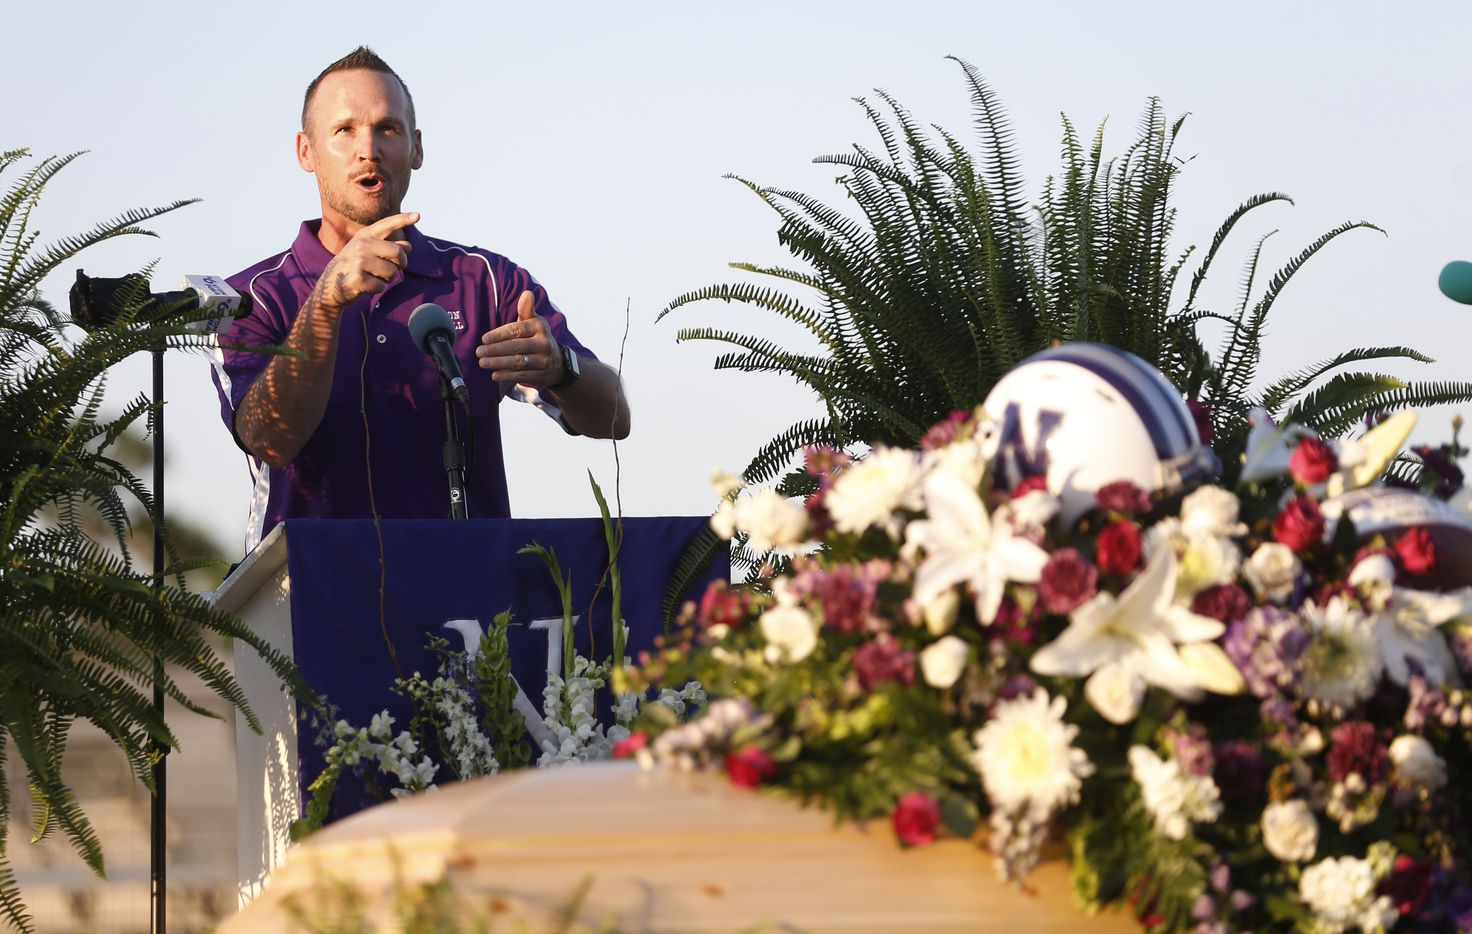 """Pastor Jason Fortenberry delivers a message during the memorial service for Newton High School head football coach William Theodore """"W.T."""" Johnston at Curtis Barbay Field at Newton High School in Newton, Texas on Wednesday, May 15, 2019. (Vernon Bryant/The Dallas Morning News)"""